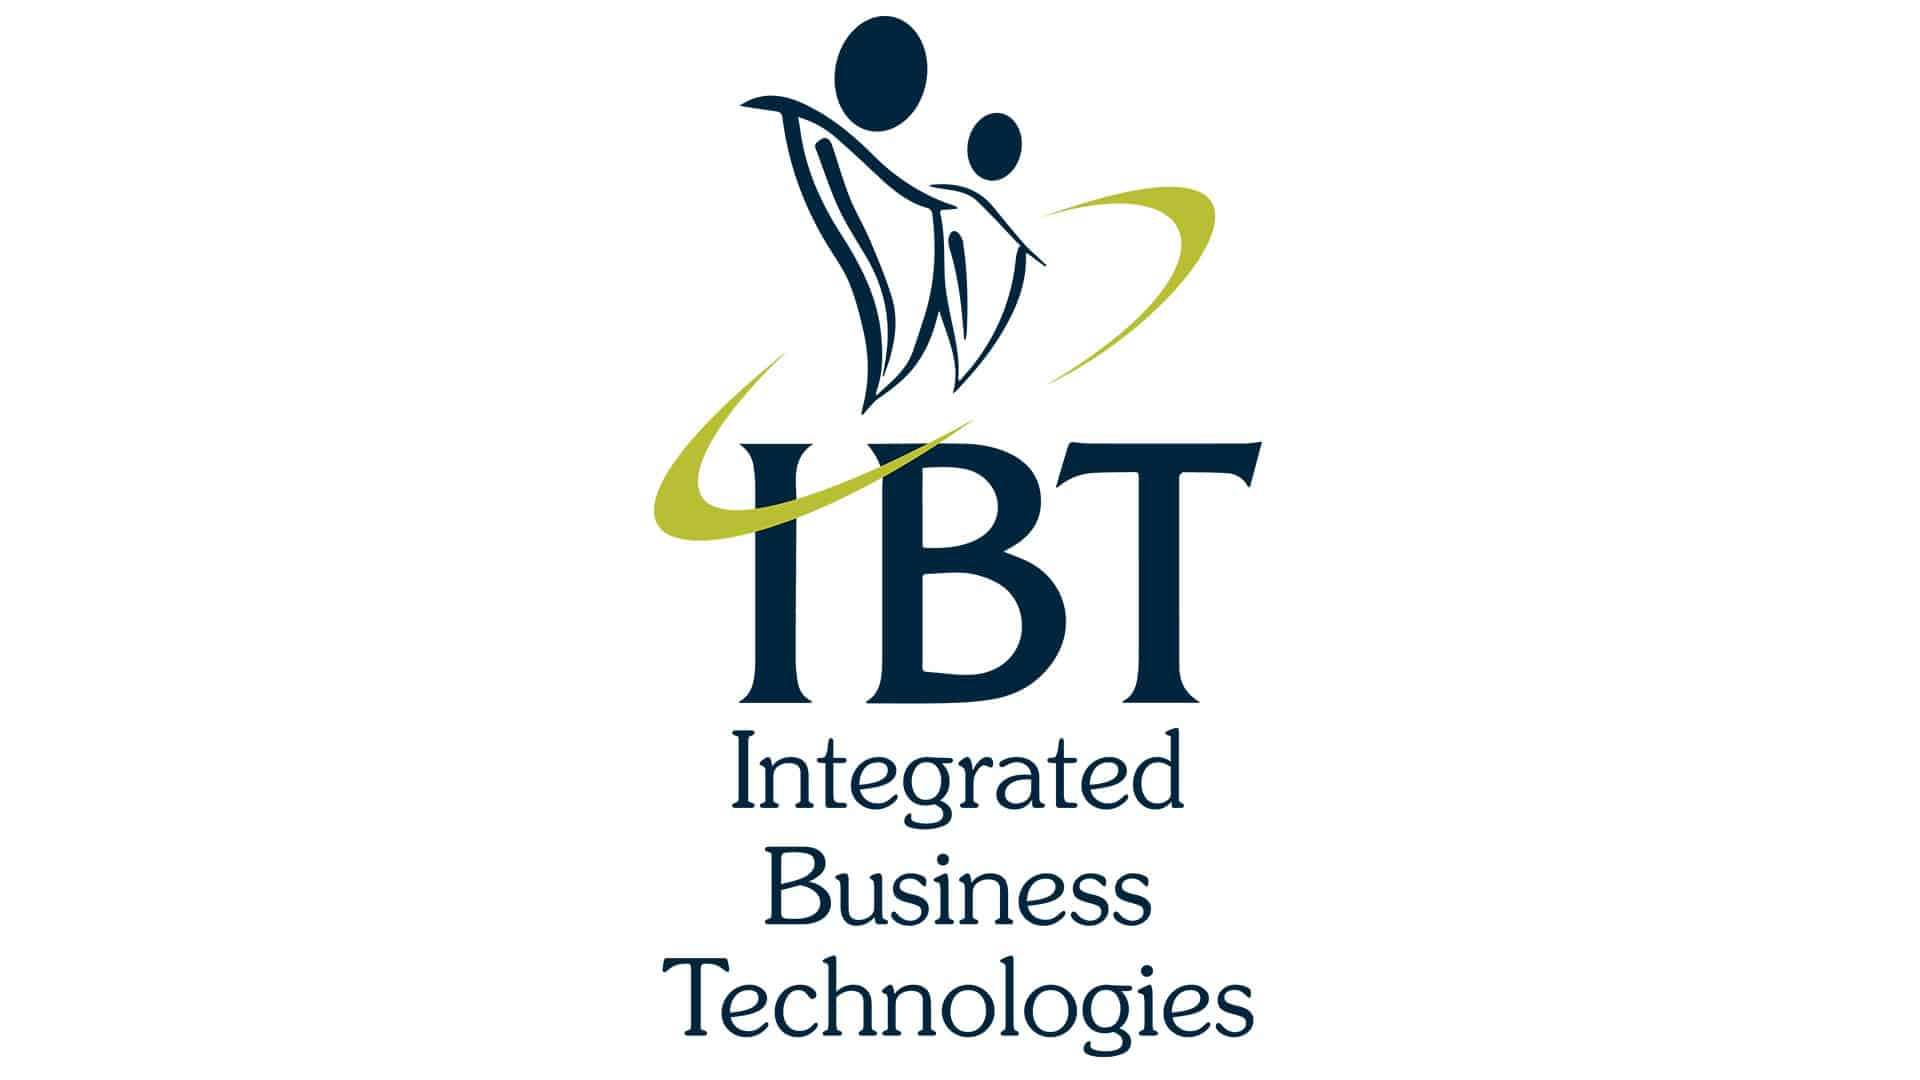 integrated business technologies